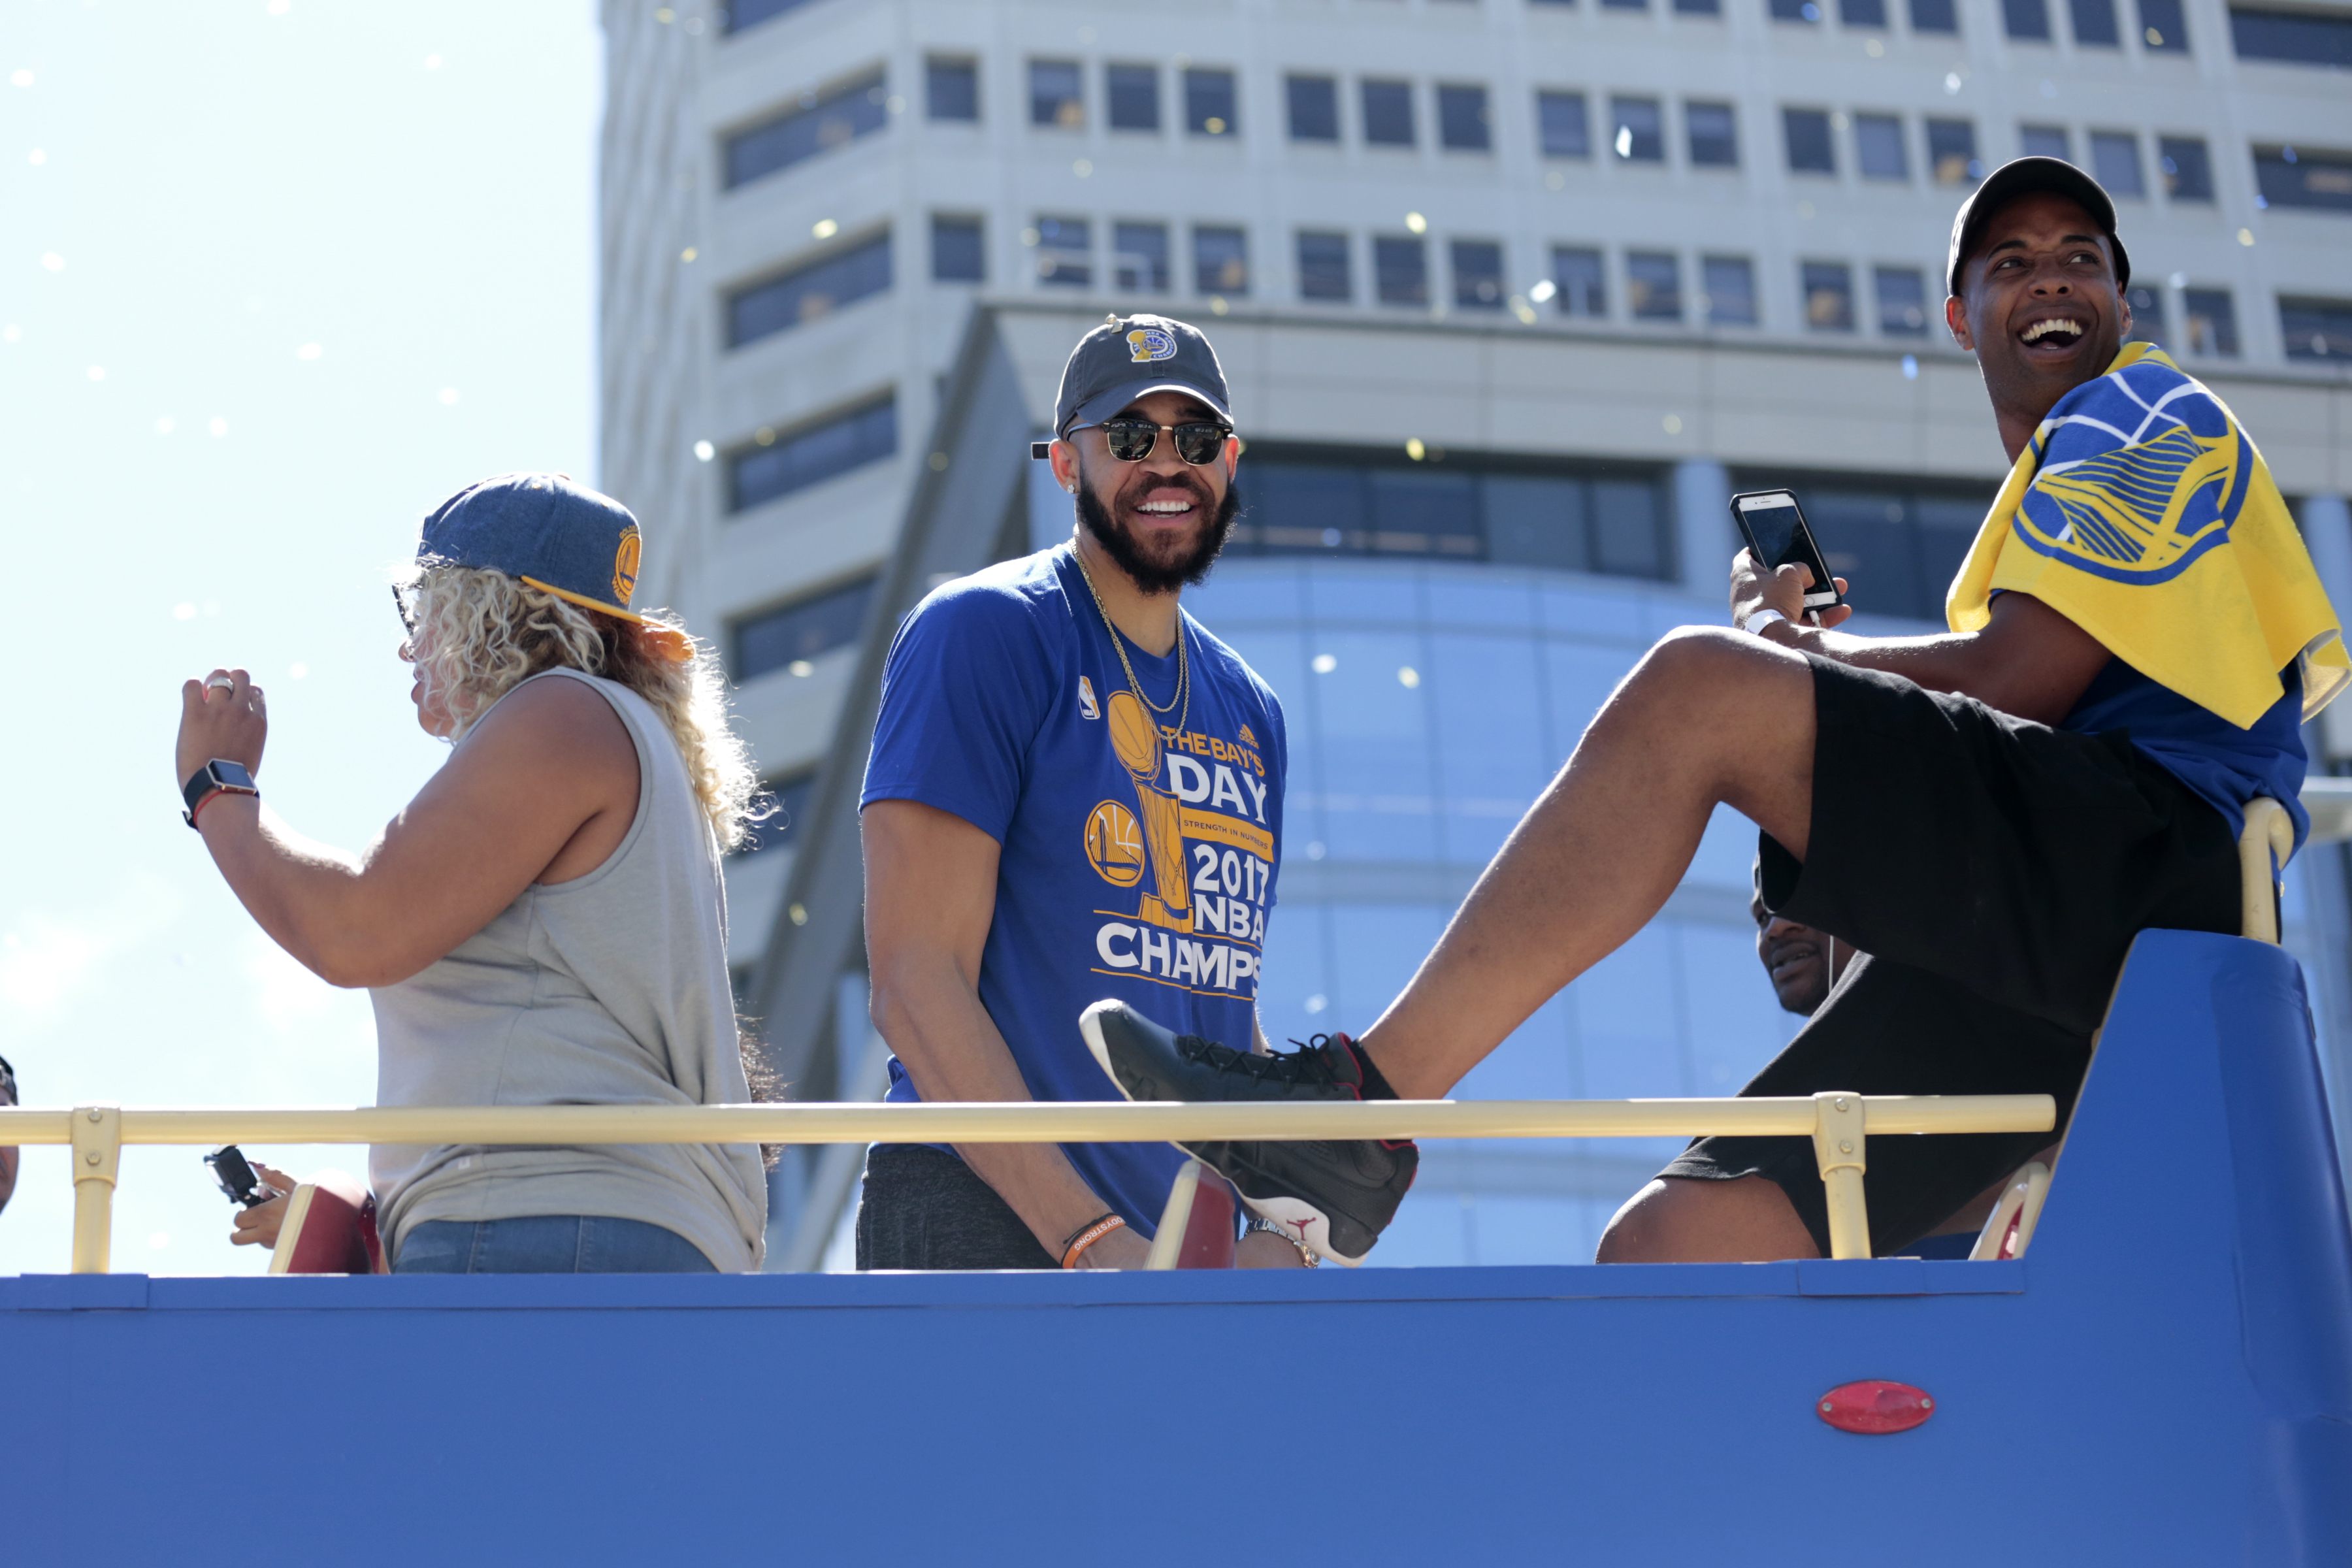 696695428-golden-state-warriors-victory-parade-and-rally.jpg